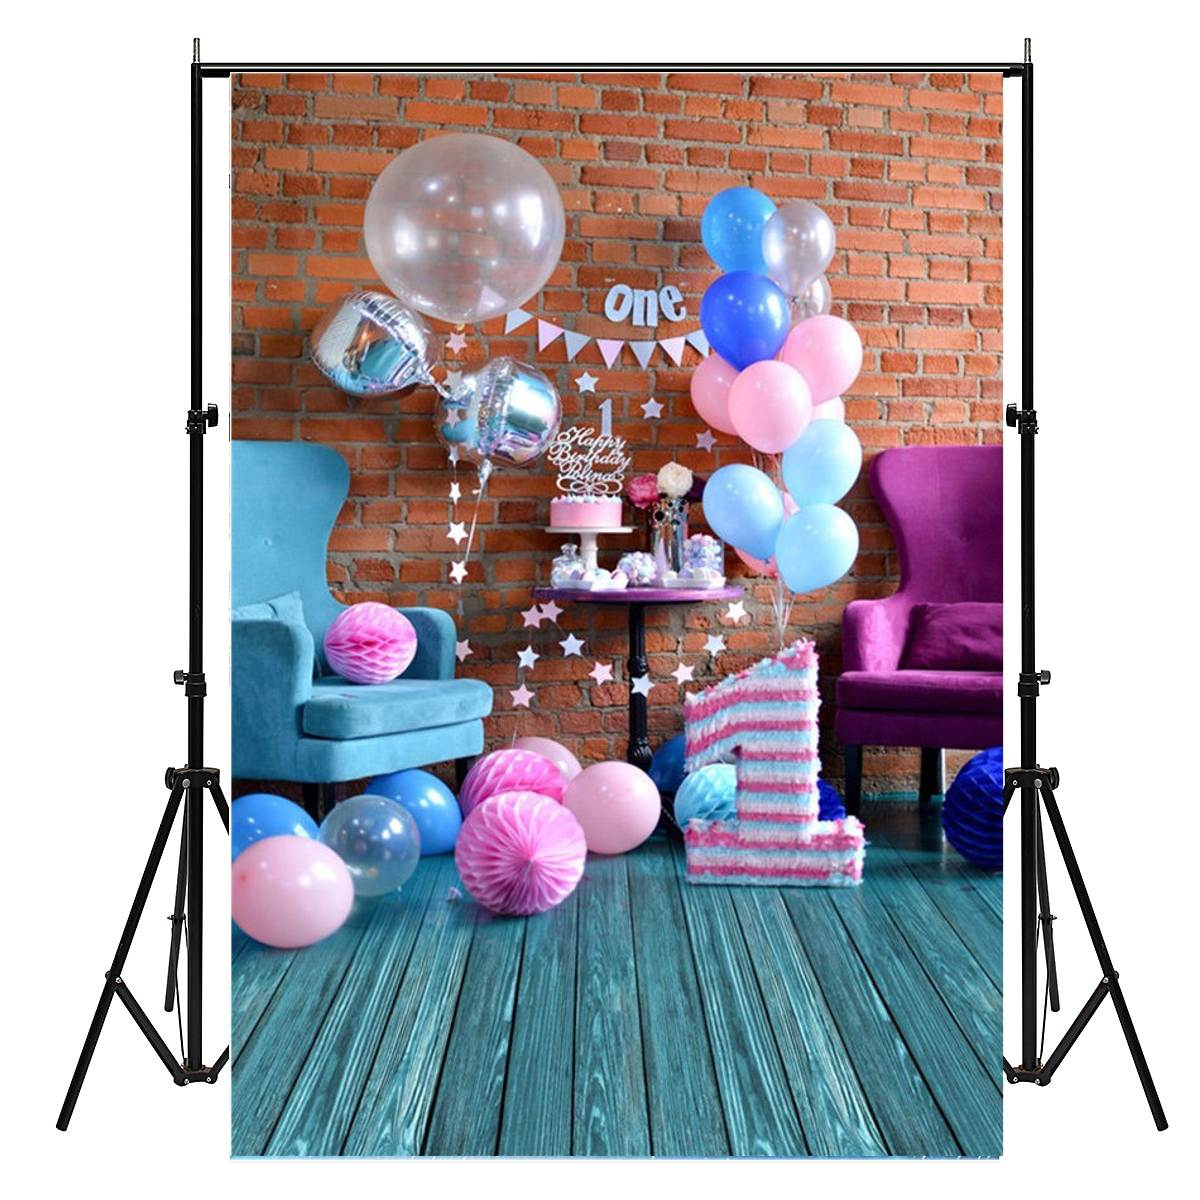 210X150cm Sweet Birthday Photography Background Studio Photo Prop Backdrop Decoration New Arrival fabric birthday party backdrop balloon and paper craft photography backdrop for photo studio photography background s 2132 c